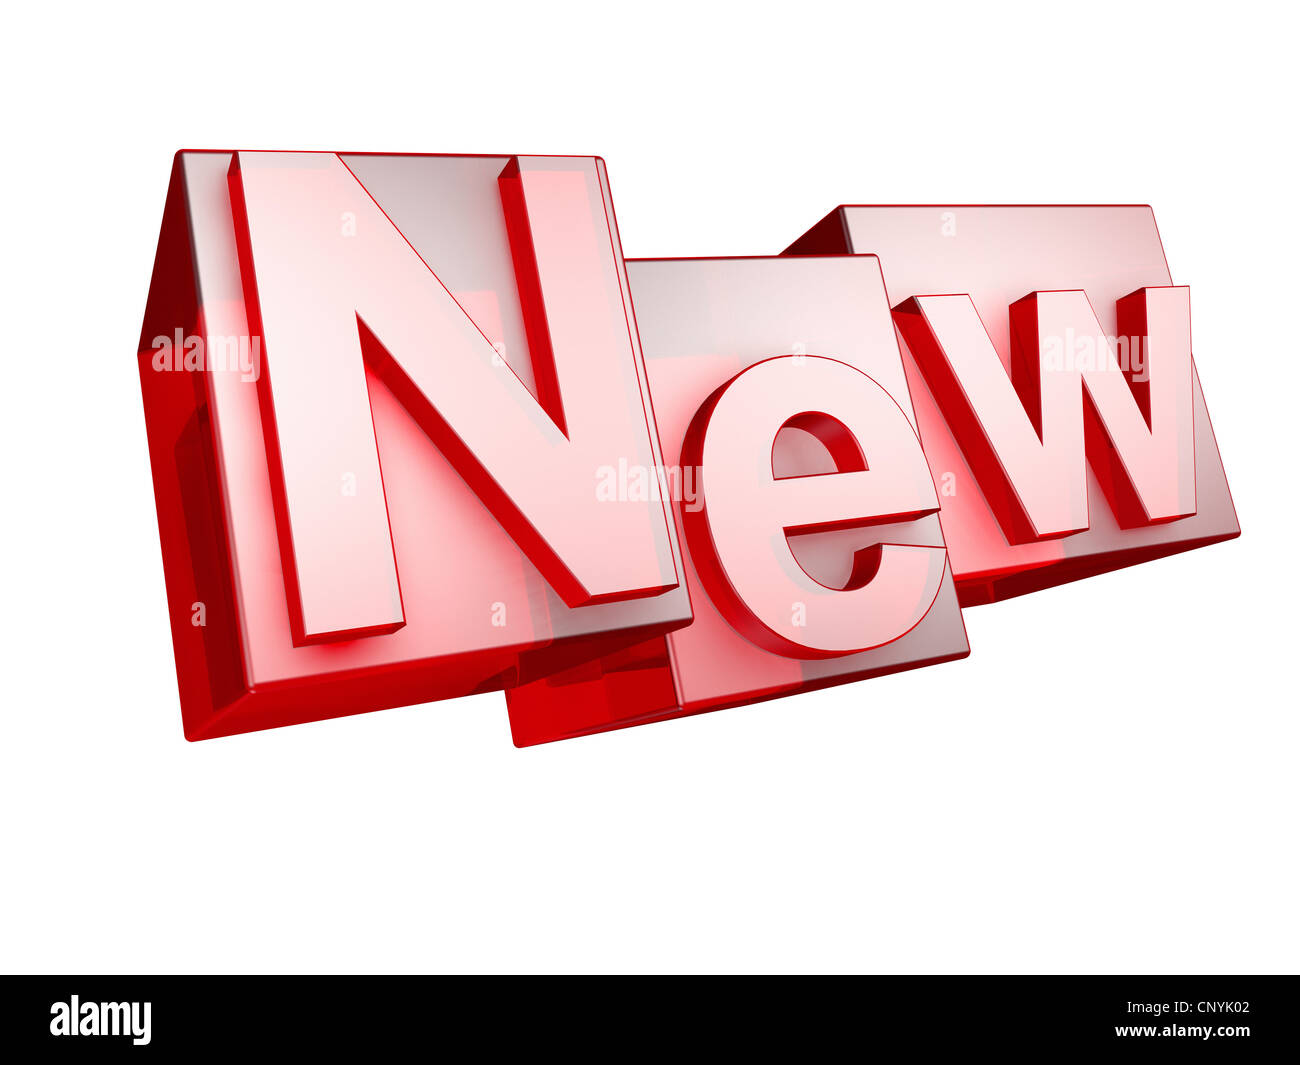 Word New In 3d Letters Stock Photos & Word New In 3d Letters